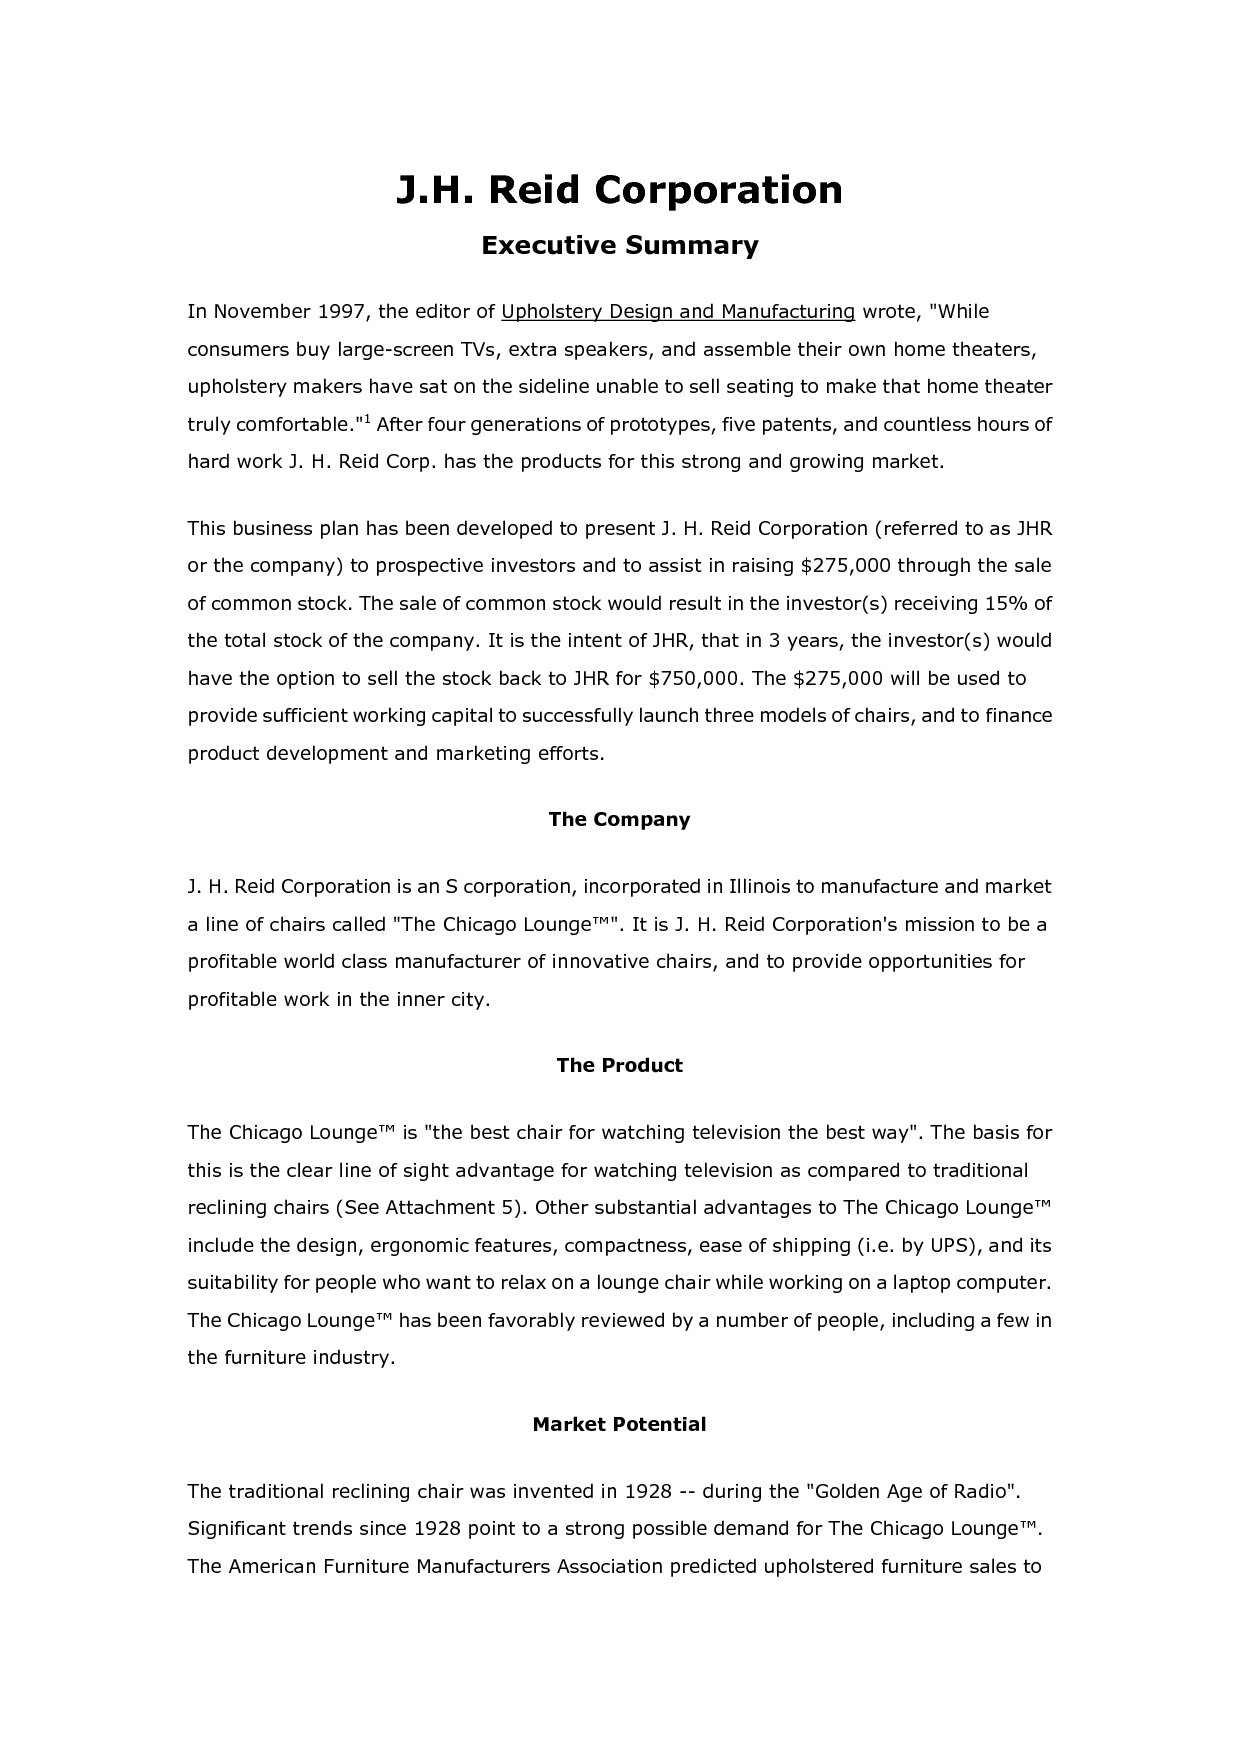 proposal for an essay proposal essay topic examples essay hard work leads to success essayjpg success essay examples business plan sample business plan sample essay